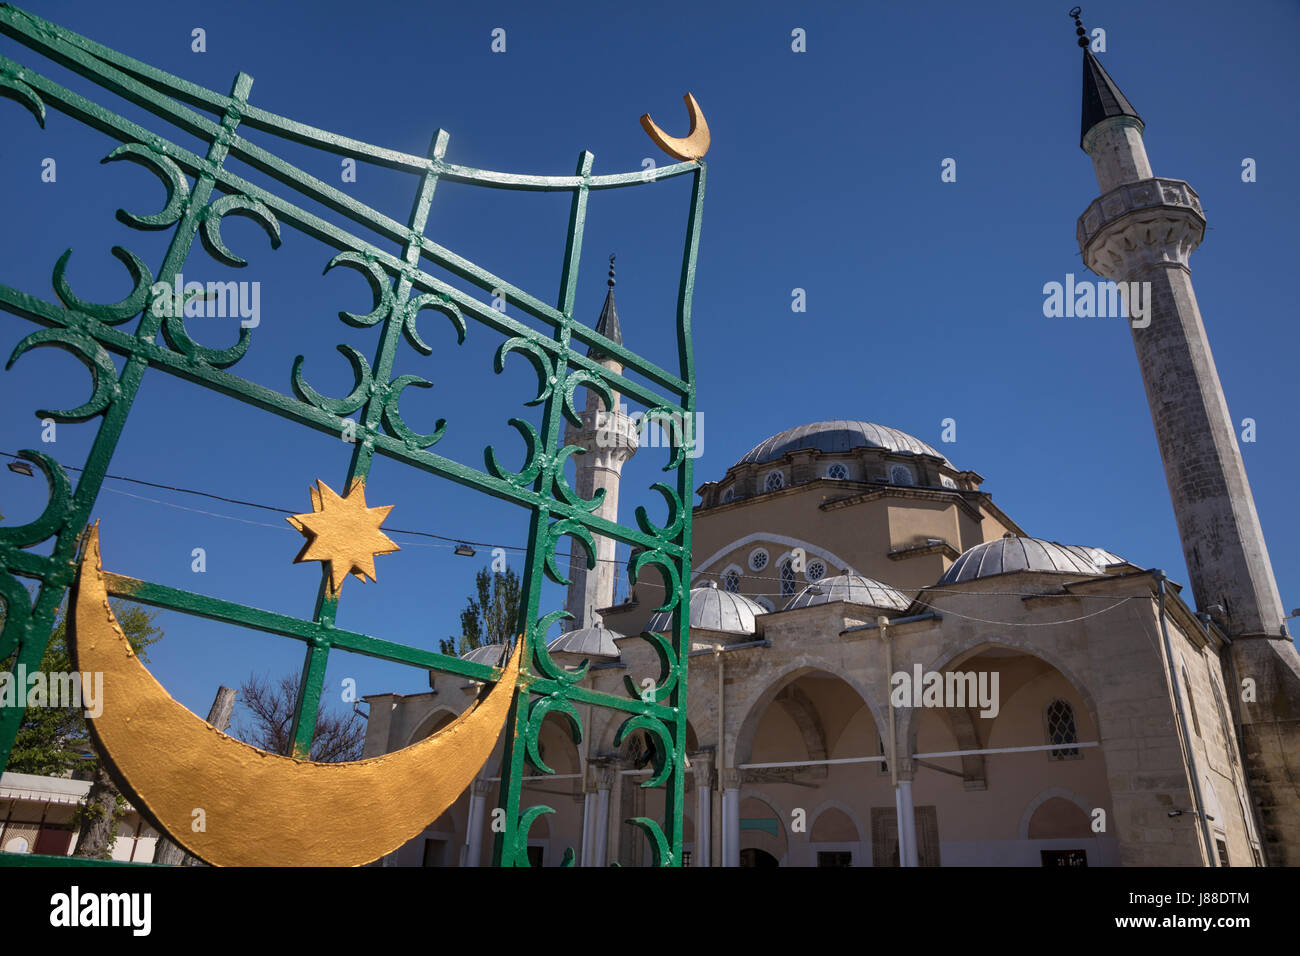 View of the Juma-Jami Mosque, also known as the Friday Mosque, is located in Yevpatoria, Crimea - Stock Image